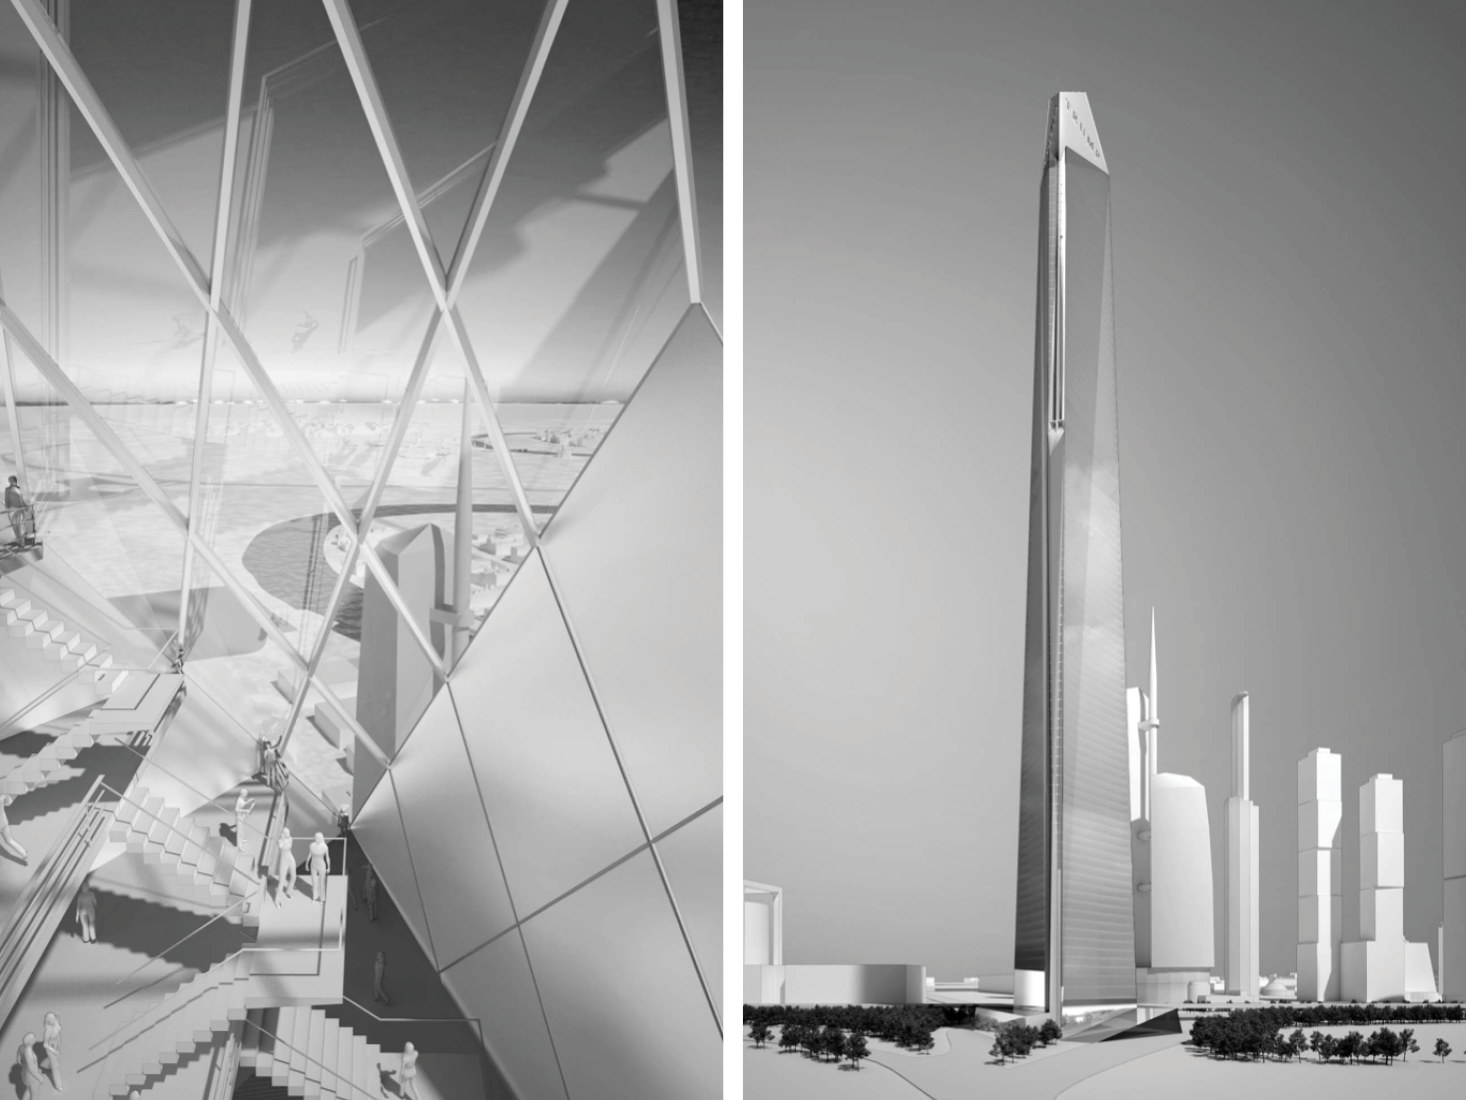 Architectural renderings of the proposed Trump Tower in Moscow.